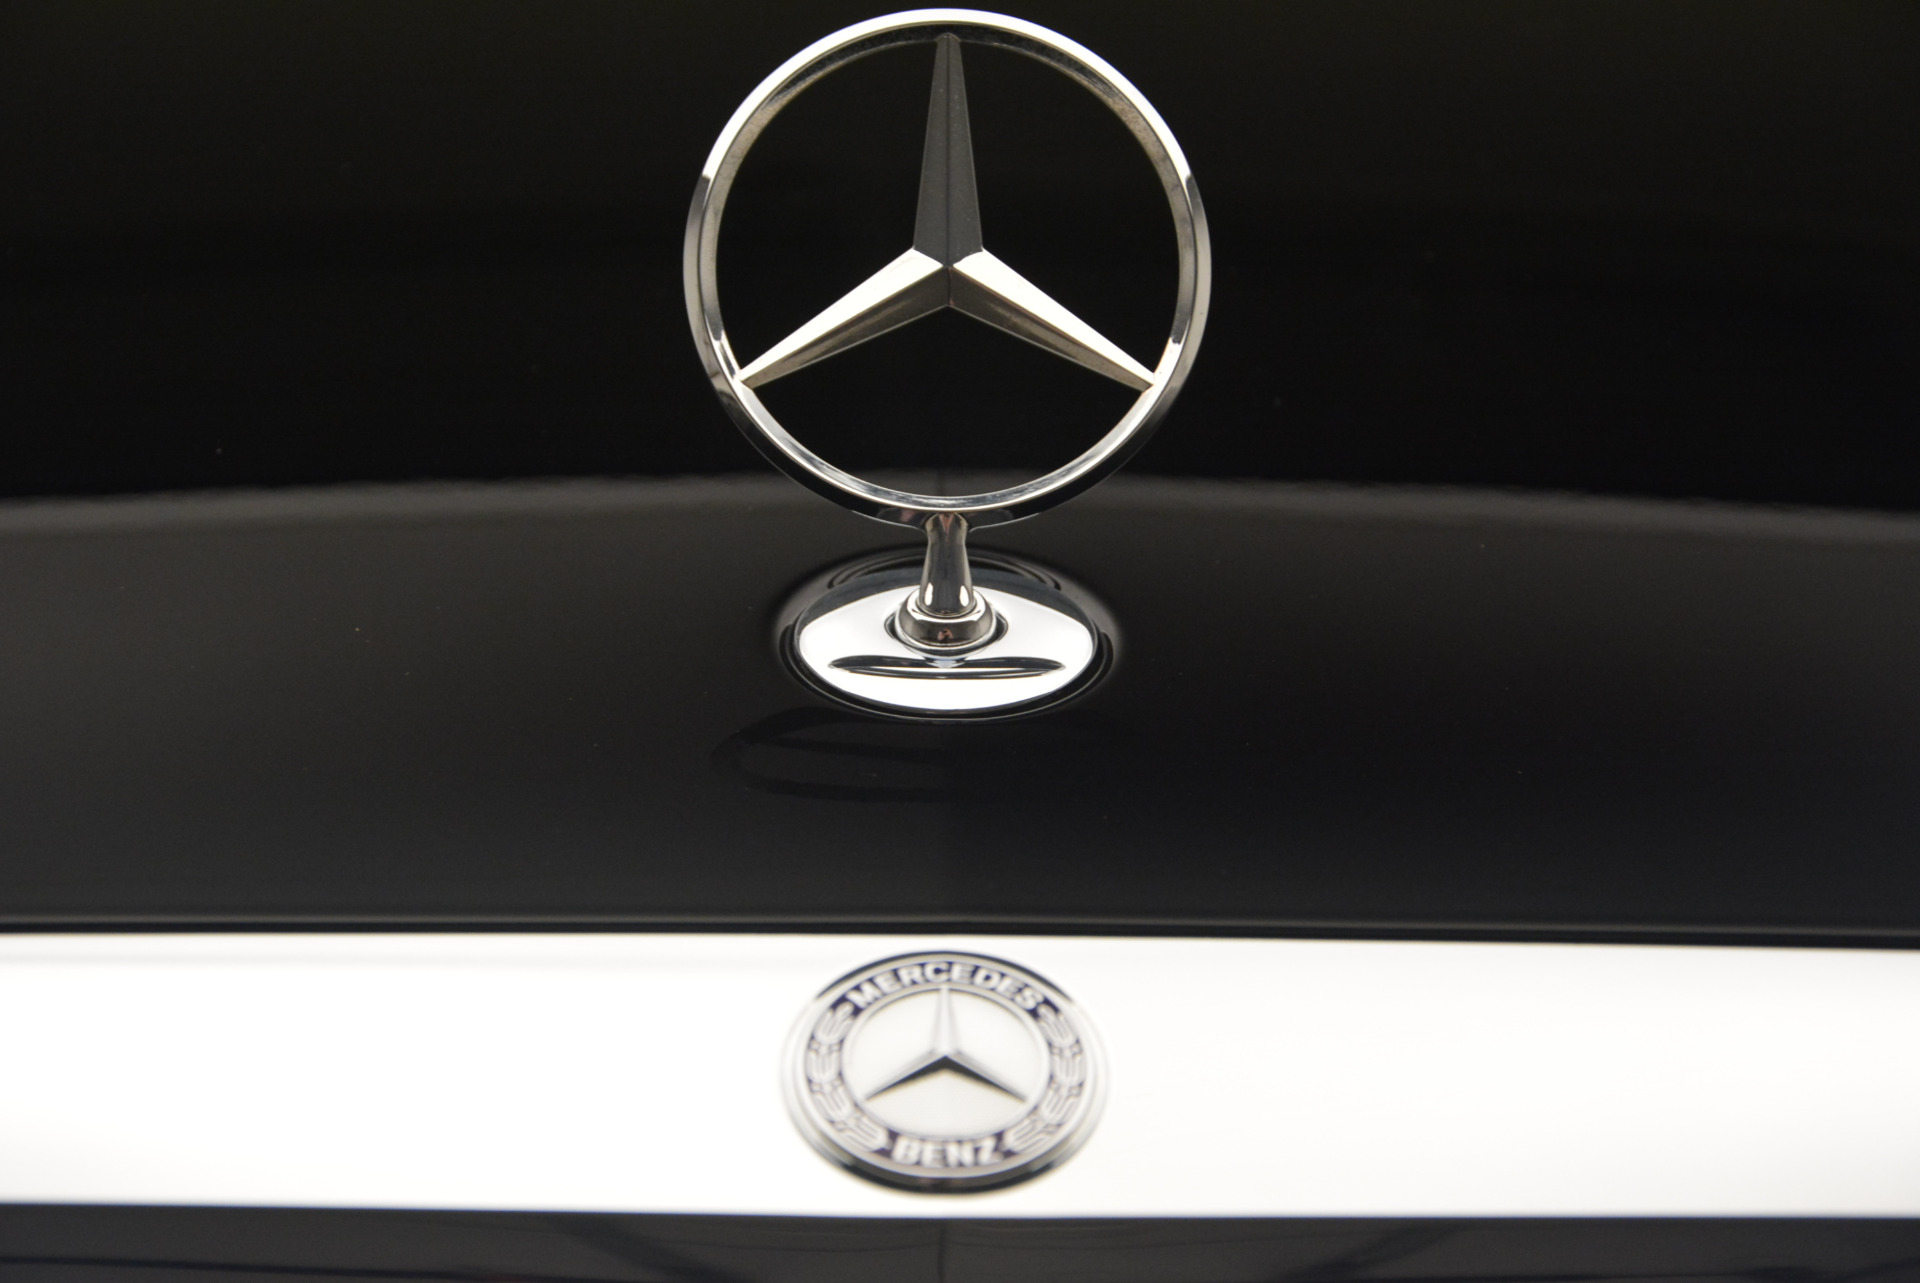 Used 2014 Mercedes Benz S-Class S 63 AMG For Sale In Greenwich, CT 912_p14